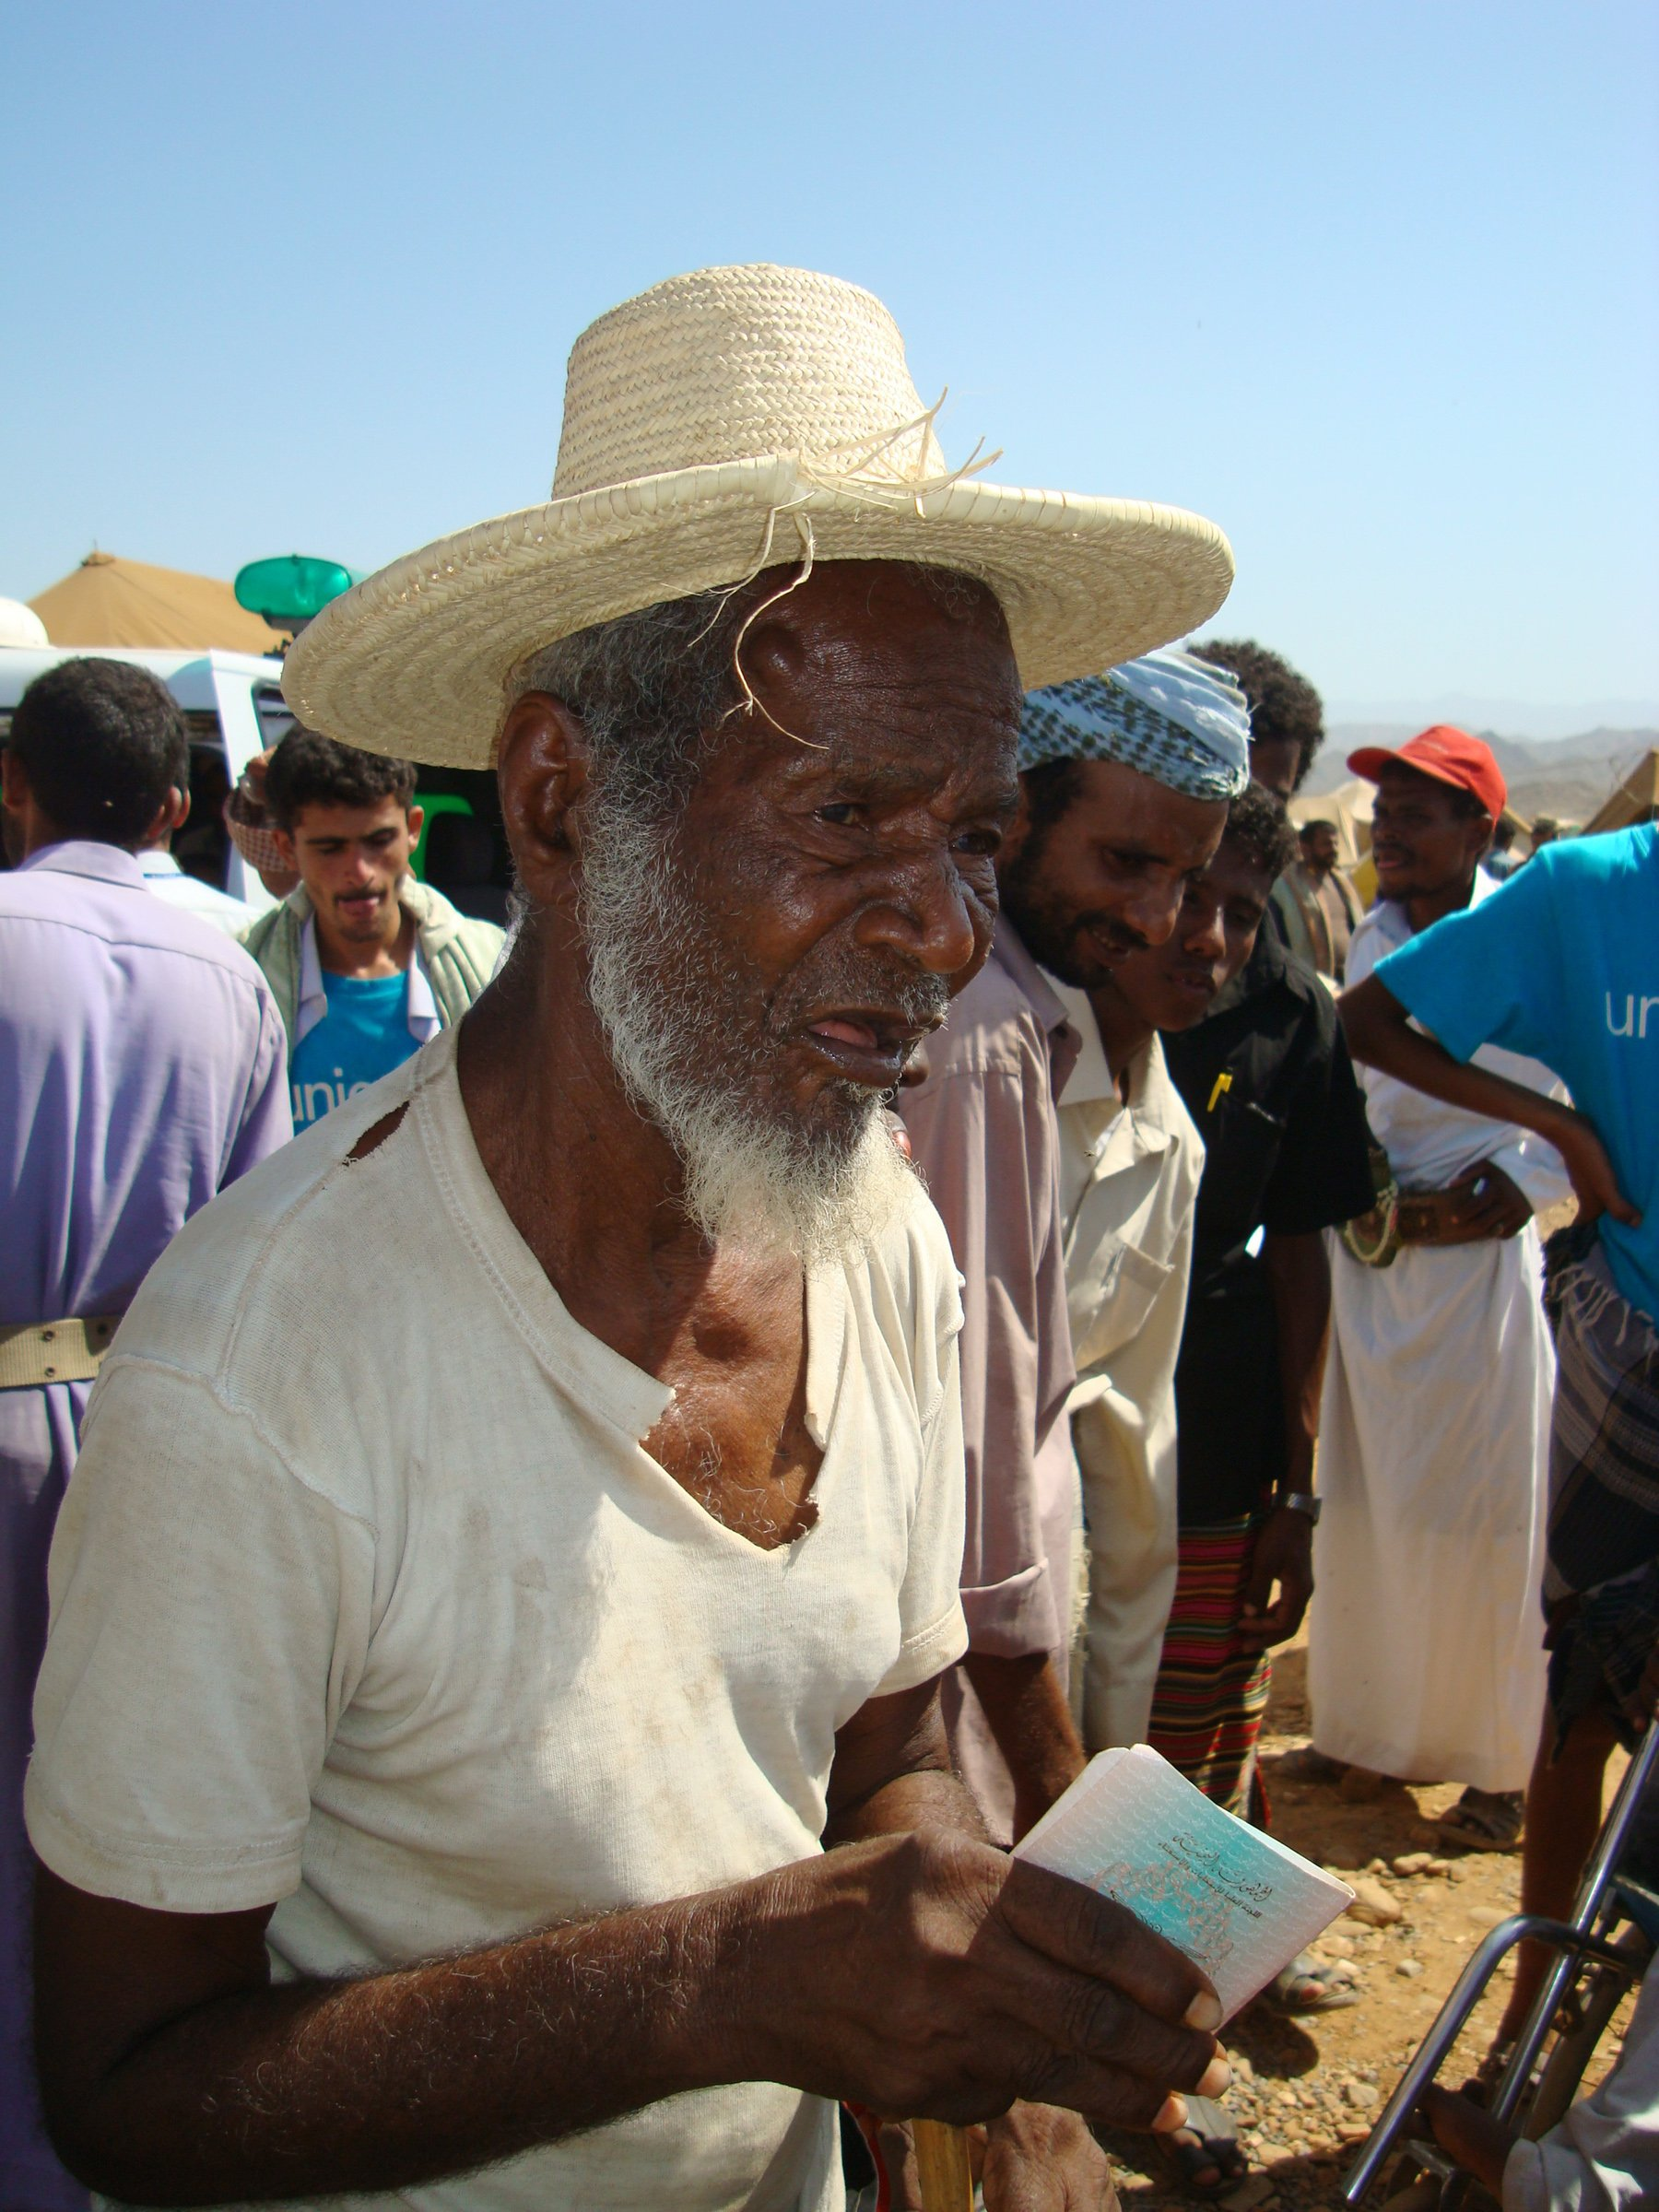 An elderly IDP holds his voting card in Haradh District, north Yemen. Some 70 families are reported to have fled to Haradh due to clashes between Houthis and Salafis